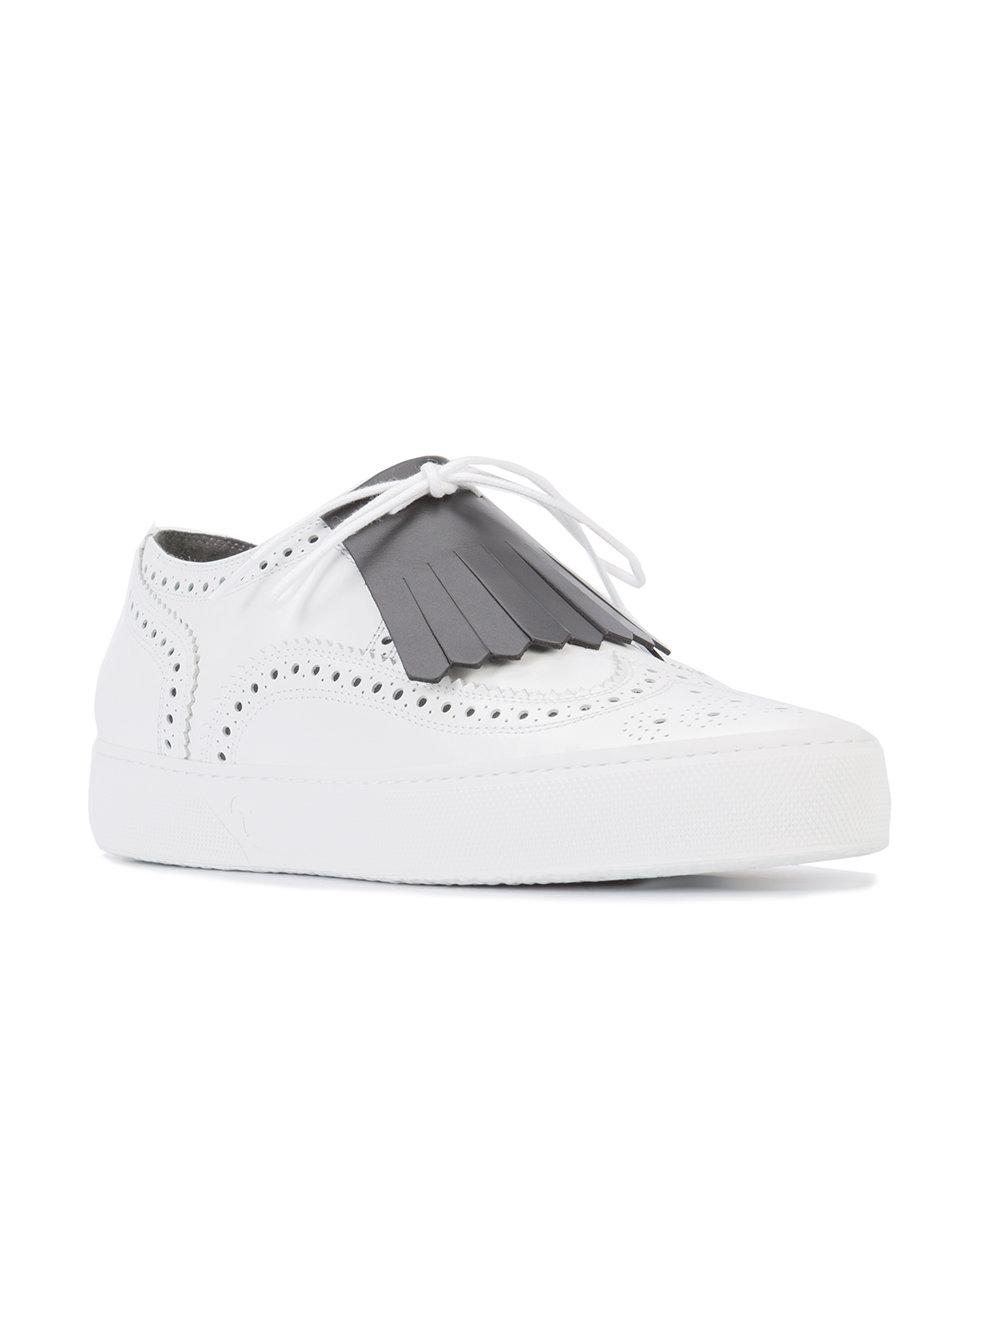 Robert Clergerie Leather Tolka Sneakers in White